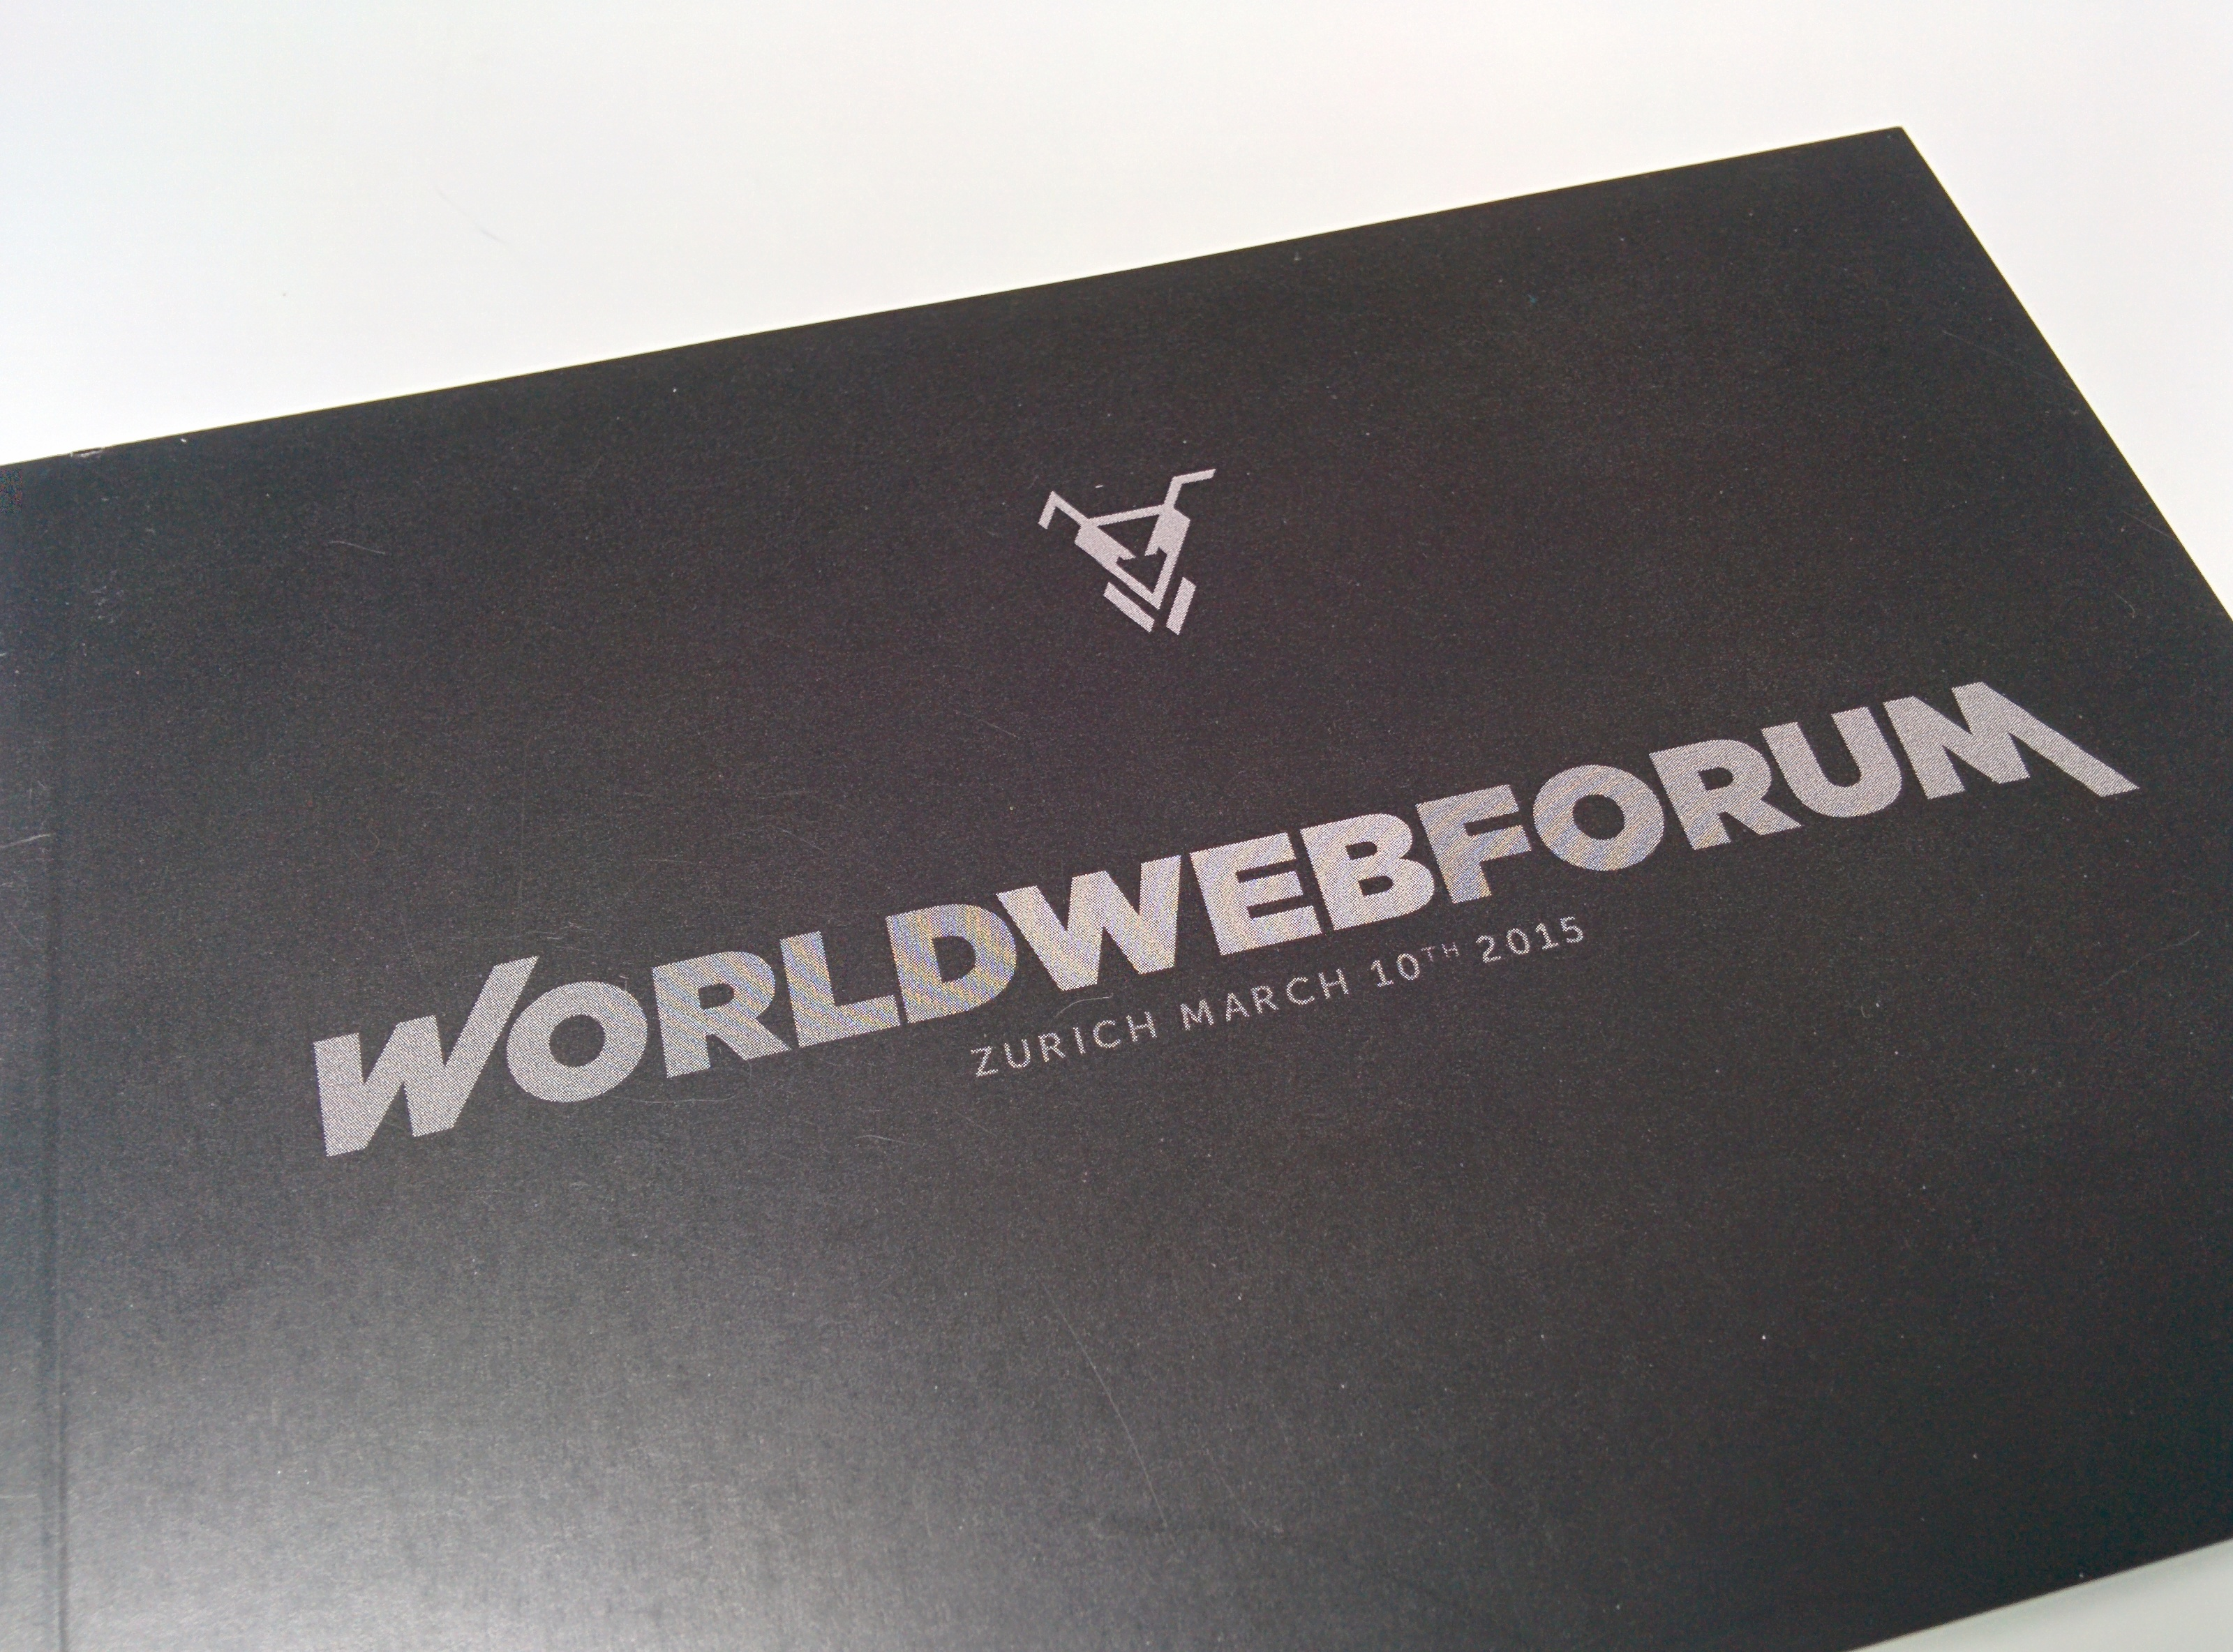 Worldwebforum Broschüre